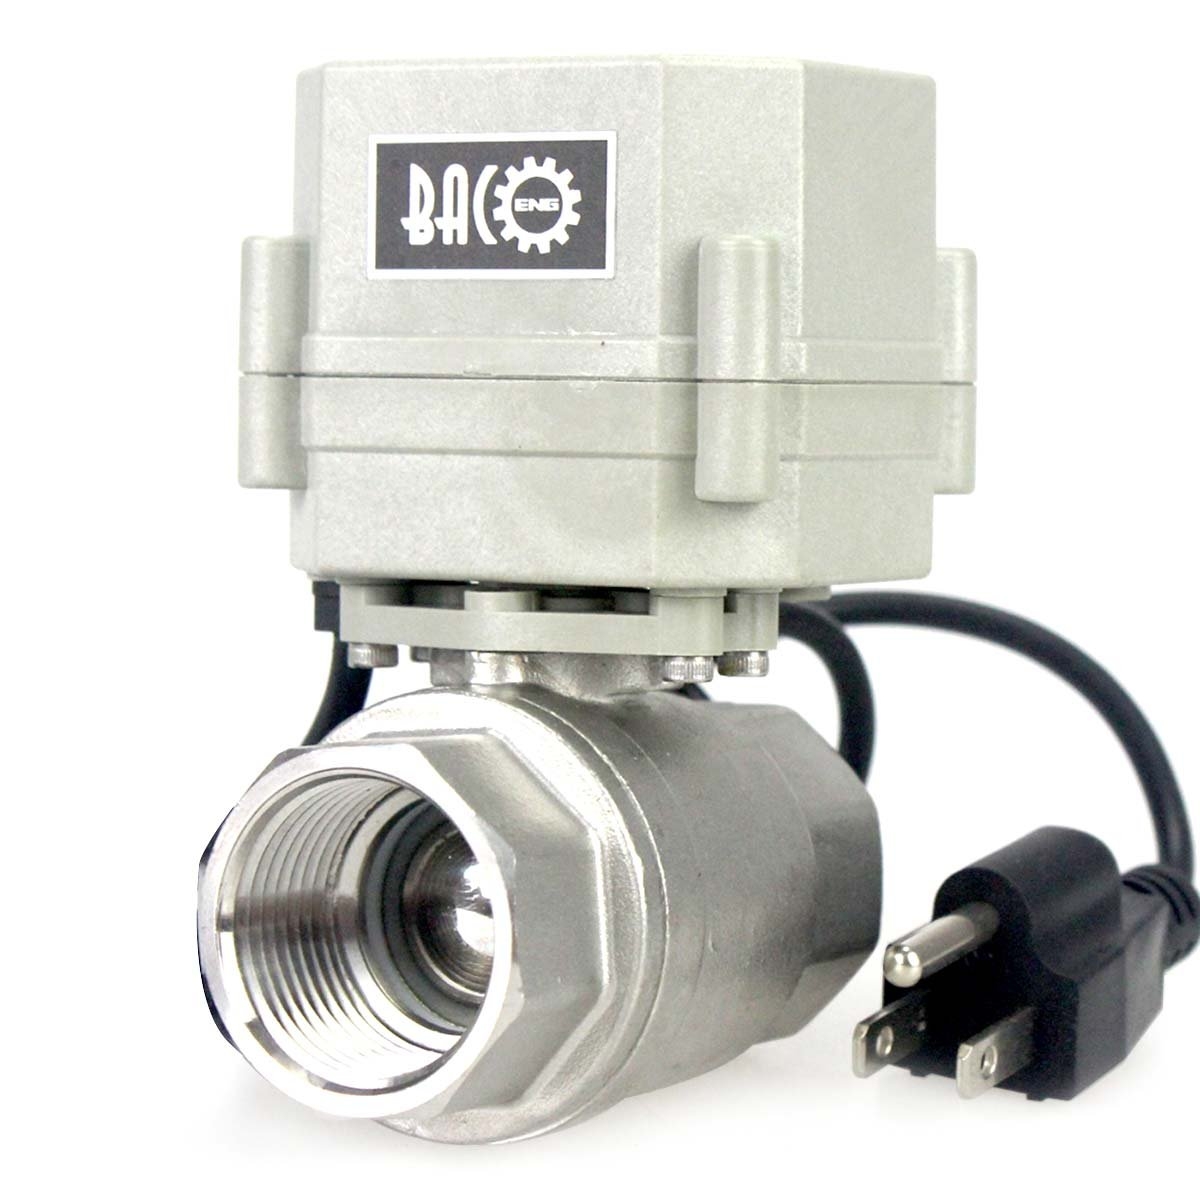 BACOENG 1/2' DN15 110VAC Stainless Steel Motorized Ball Valve, NC Electrical Ball Valve BACO ENGINEERING